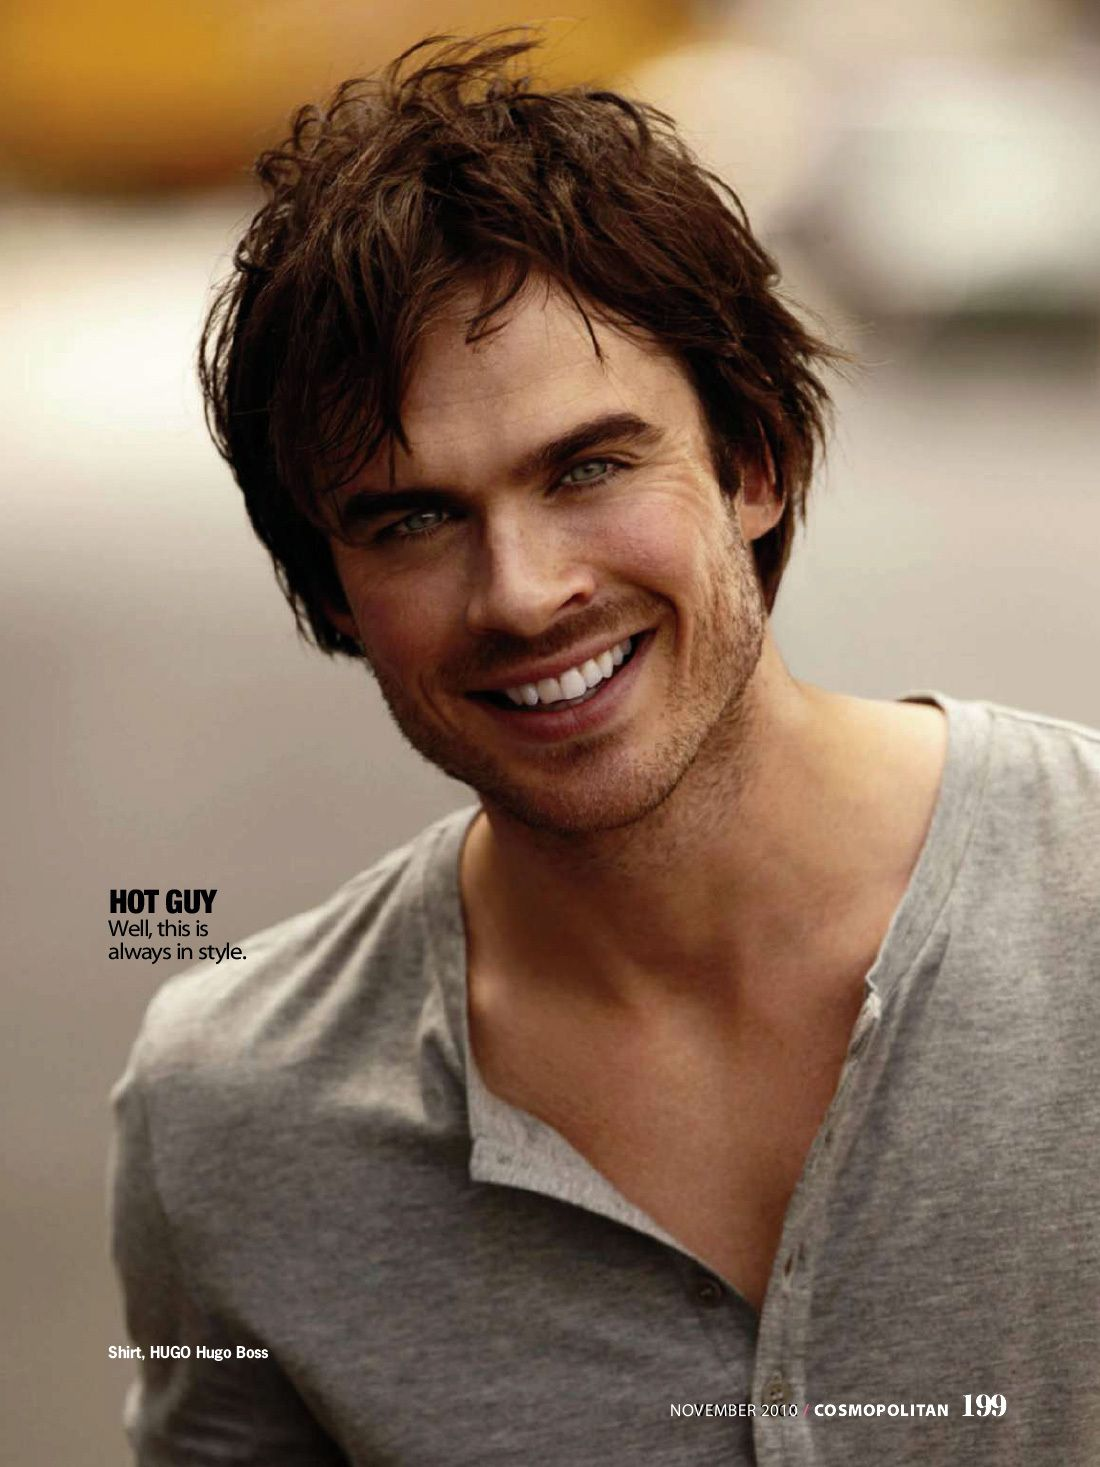 Ian Somerhalder. haha love the thing caption is this picture, a hot guy is always in style